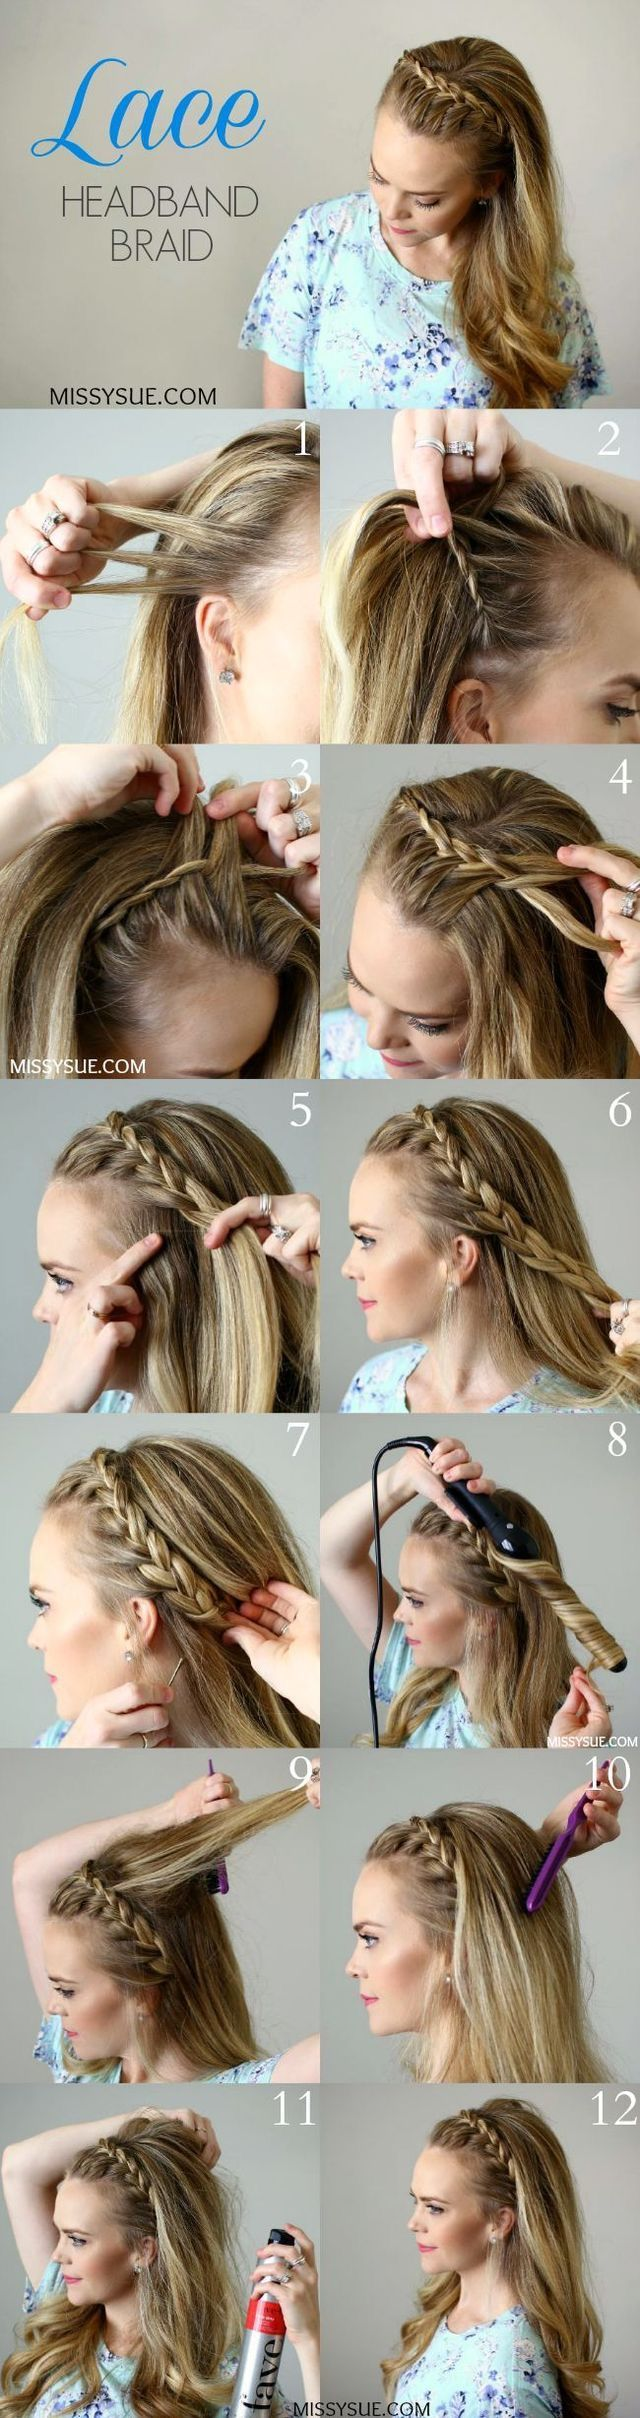 Trenza cabelo pinterest hair style makeup and hair makeup